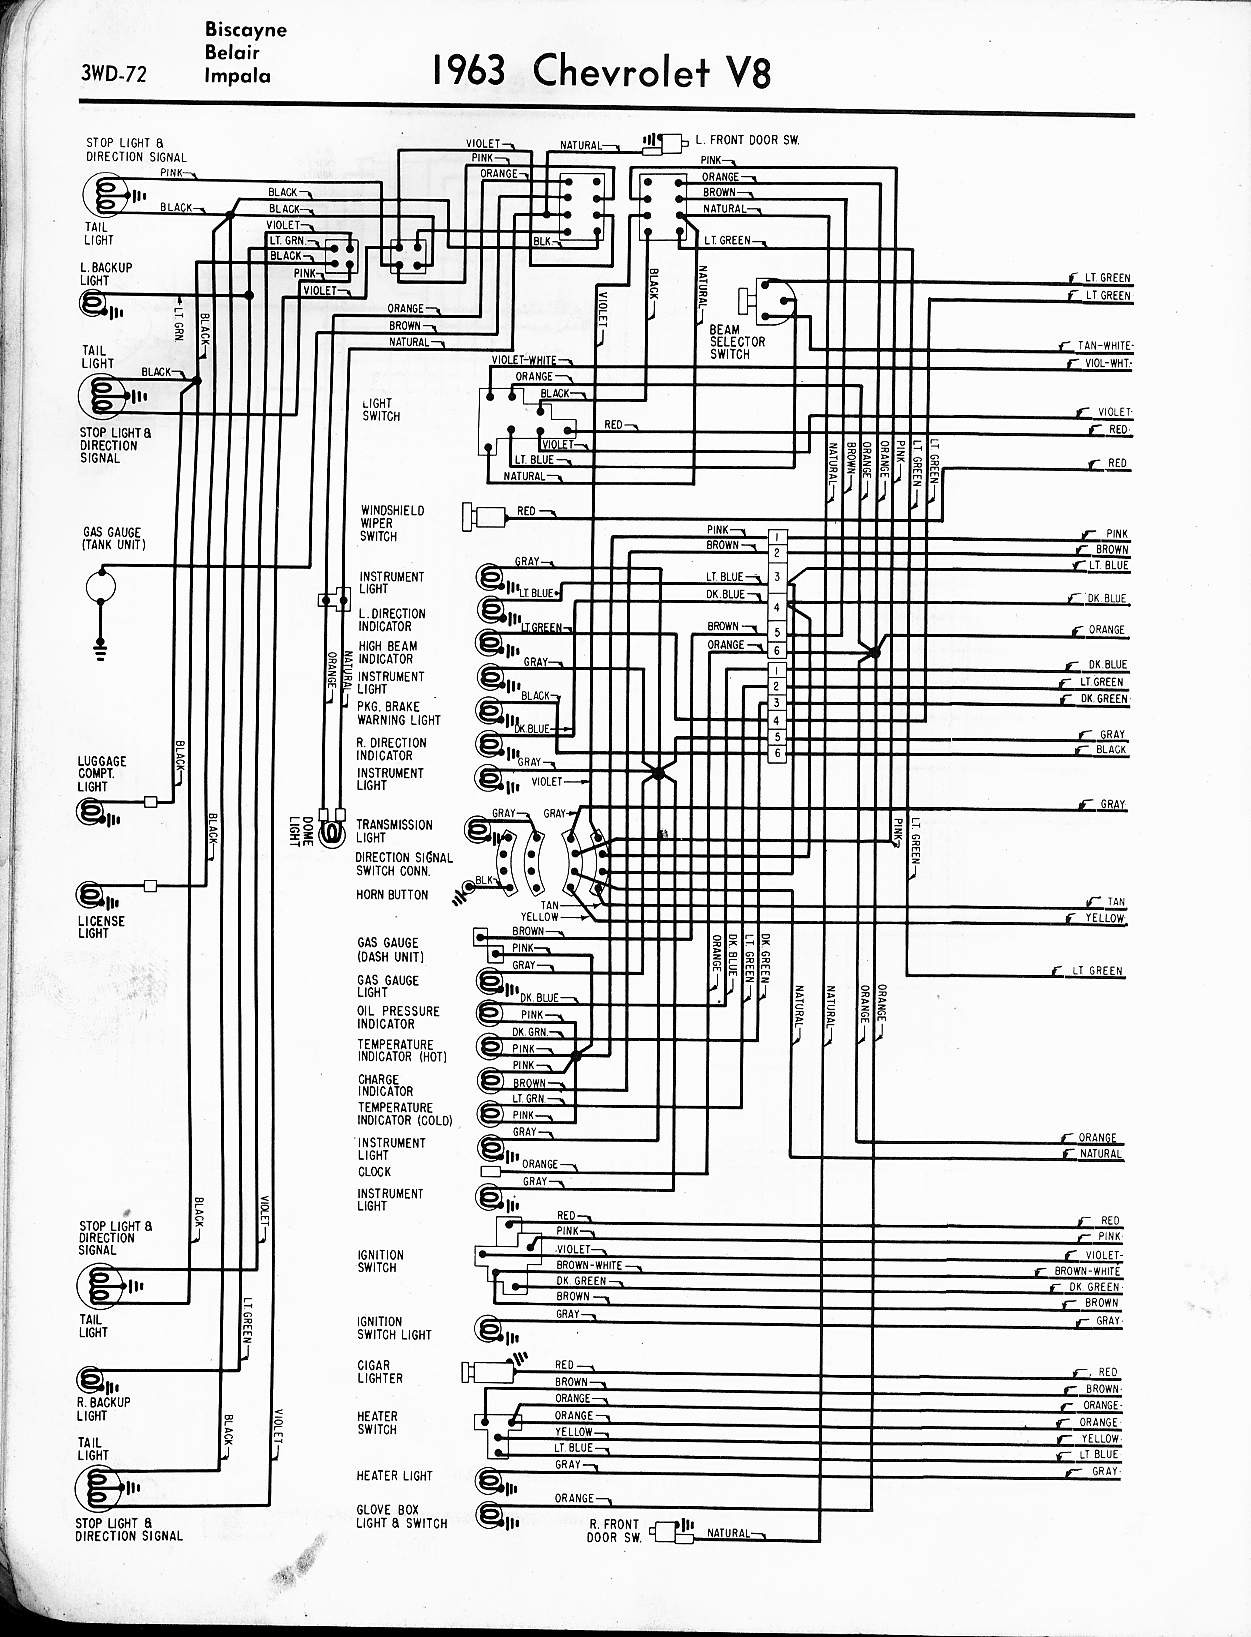 wiring diagram for 1966 chevy impala ss - wiring diagram ... 72 mgb wiring diagram